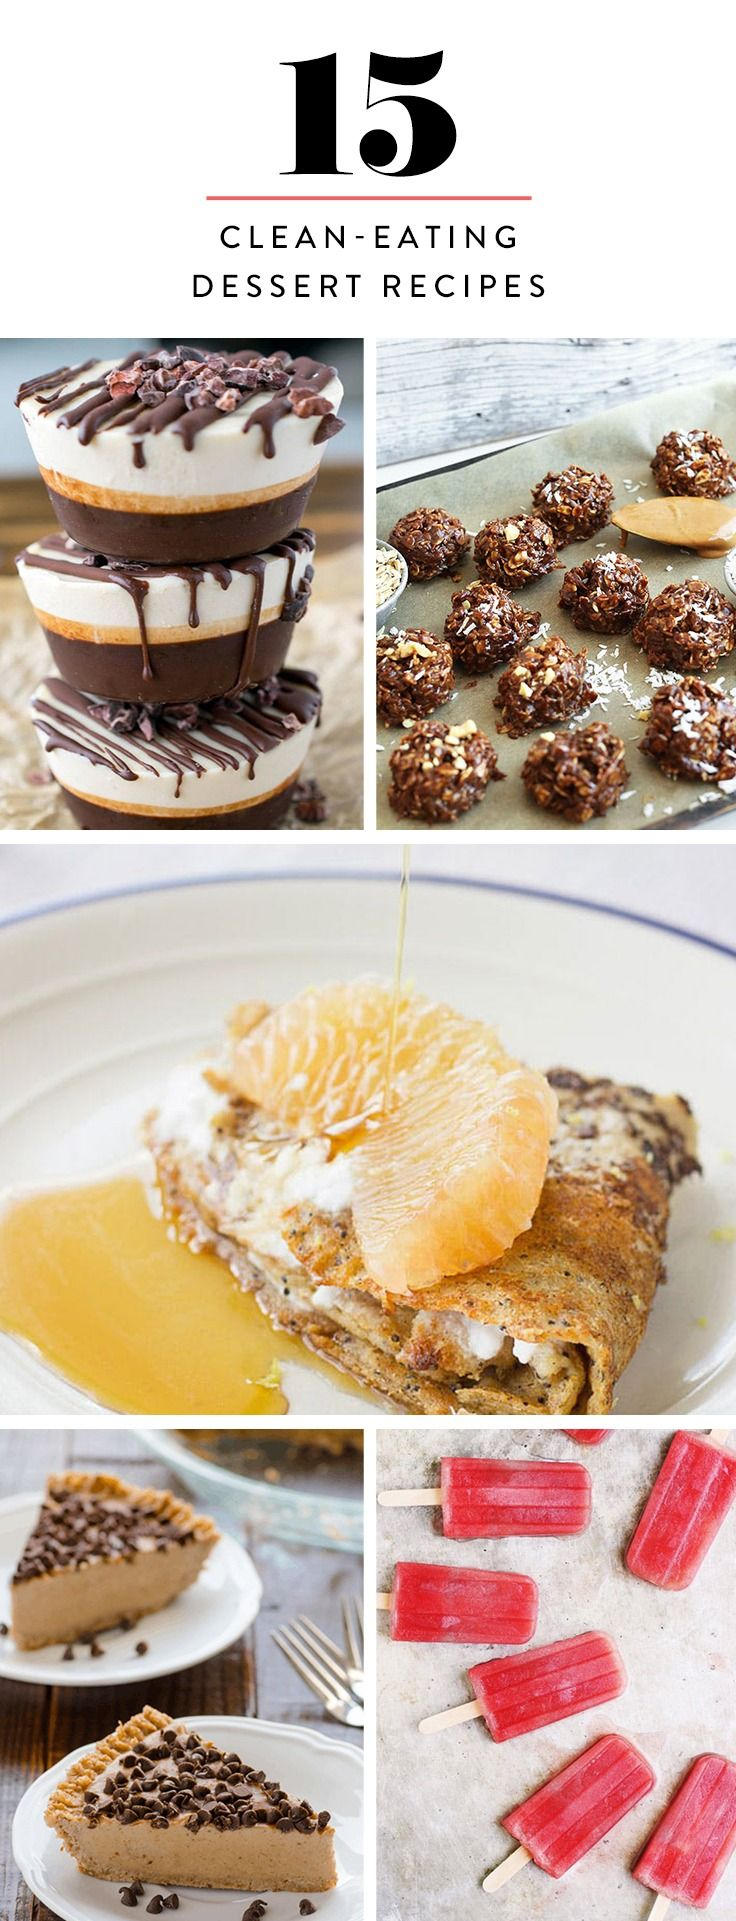 168 best healthy desserts images on pinterest 15 clean eating desserts that wont ruin your diet forumfinder Images